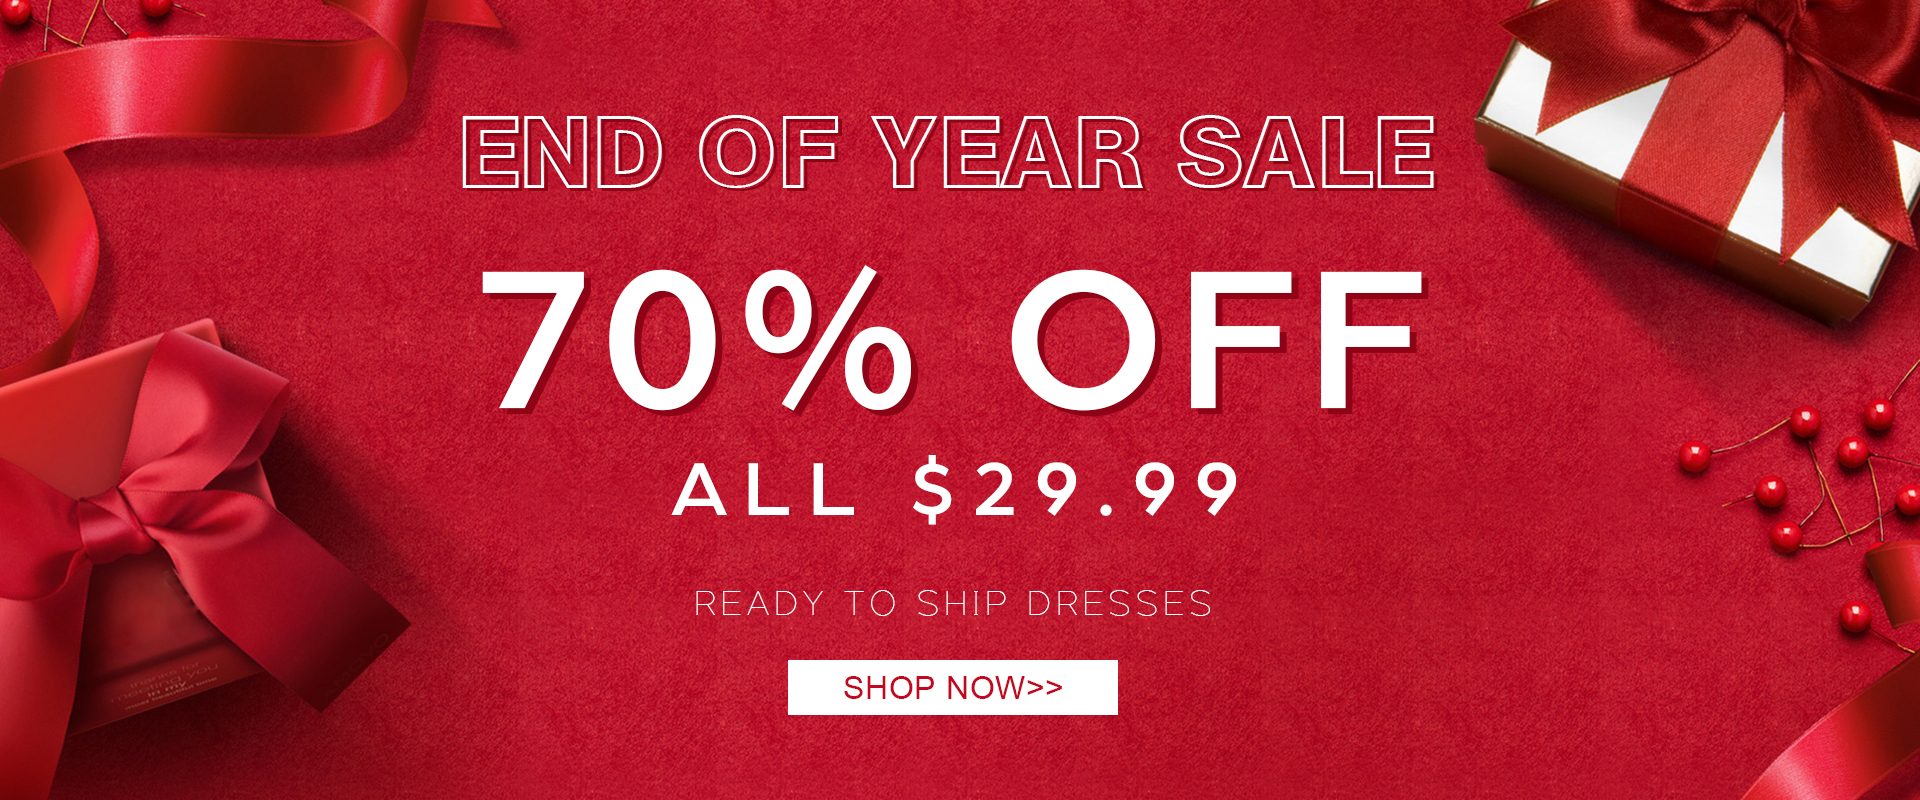 BM Bridal Year End Sale - Ready to Ship Dresses JUST $29.99!